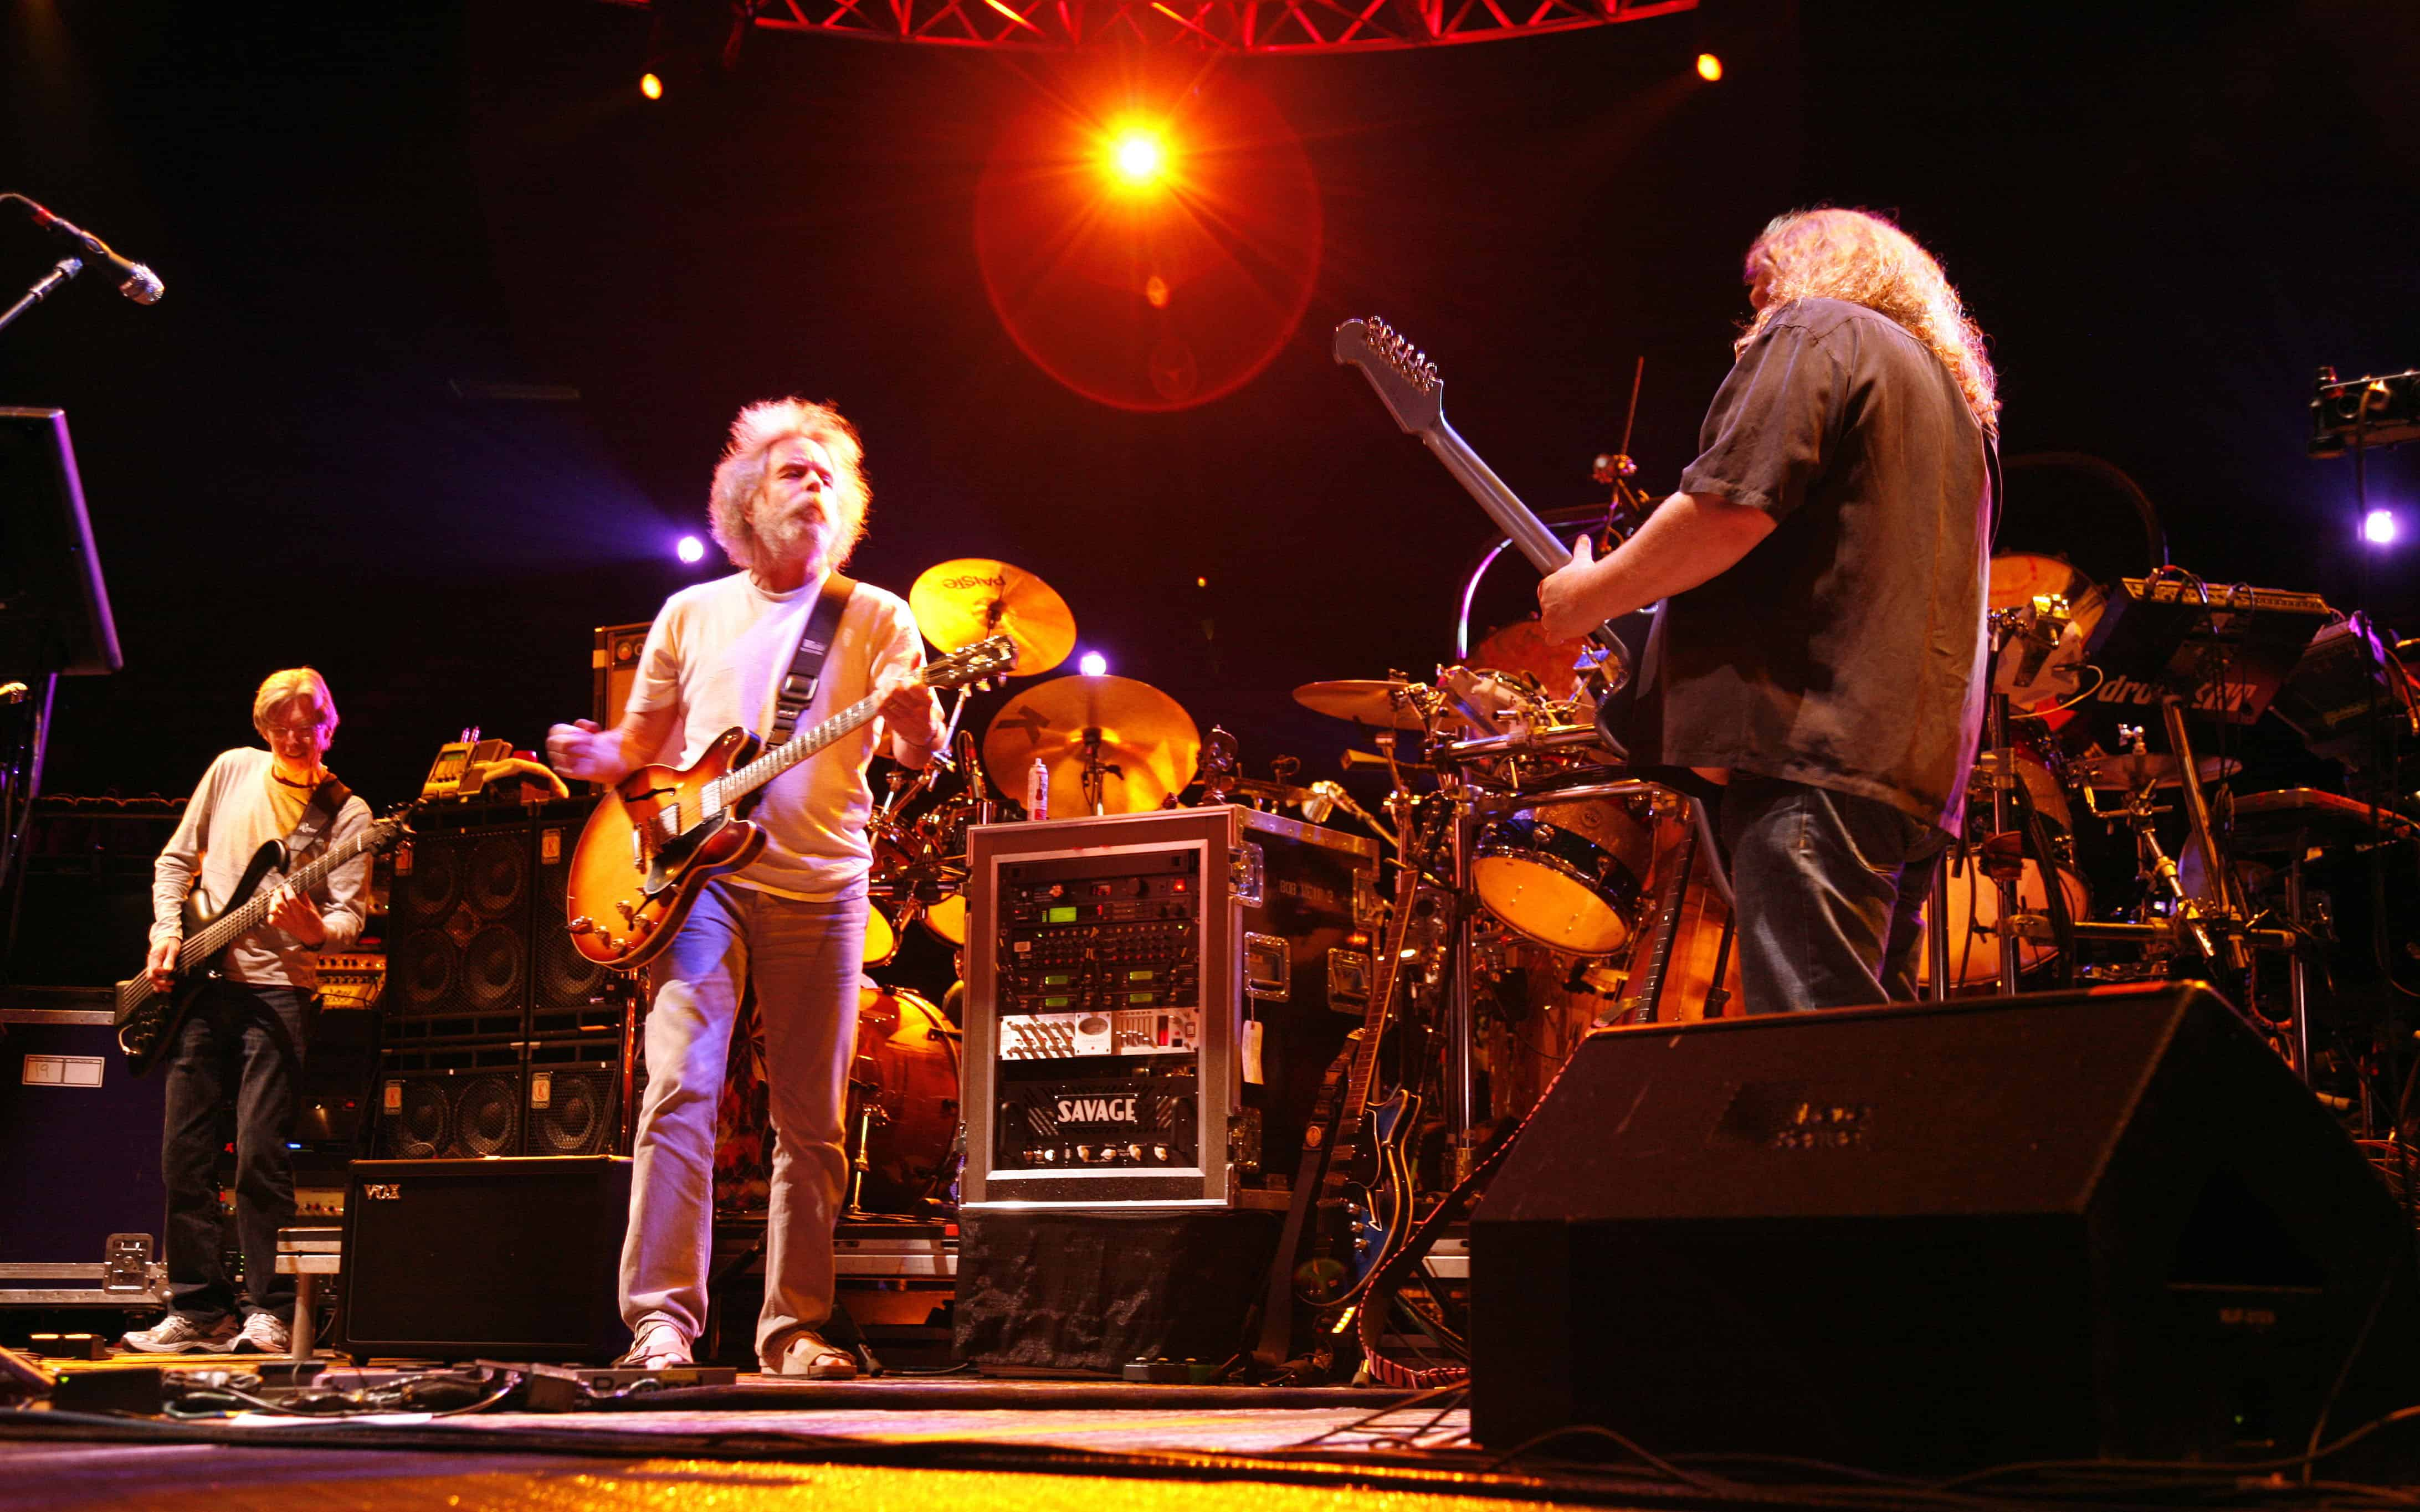 Phil Lesh, Bob Weir and Warren Haynes of The Dead perform in 2009.